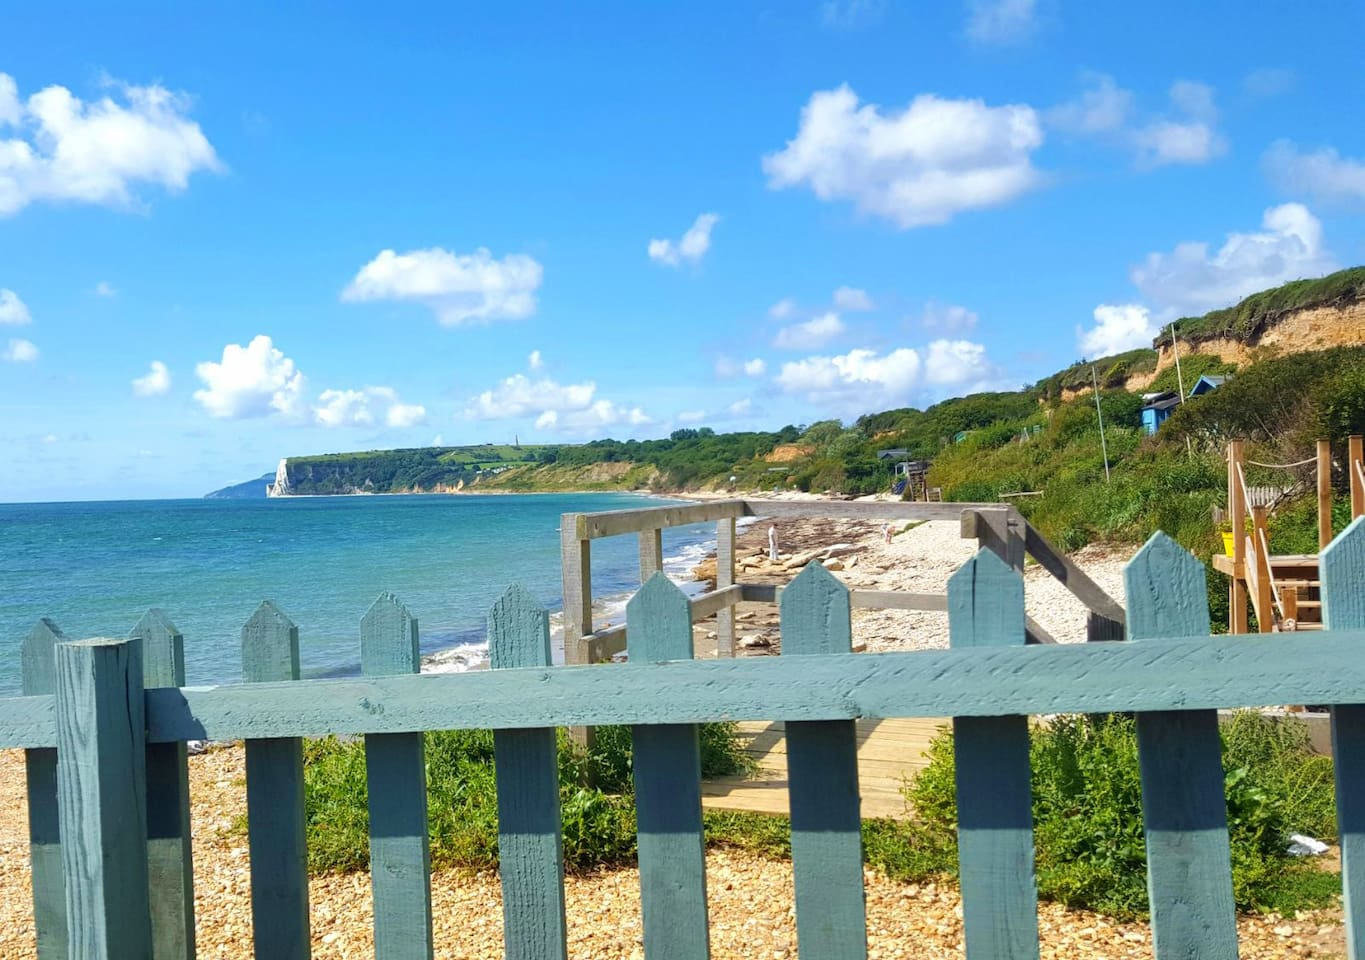 Isle of Wight, Bembridge - the beach is a mere 5 minute walk away.